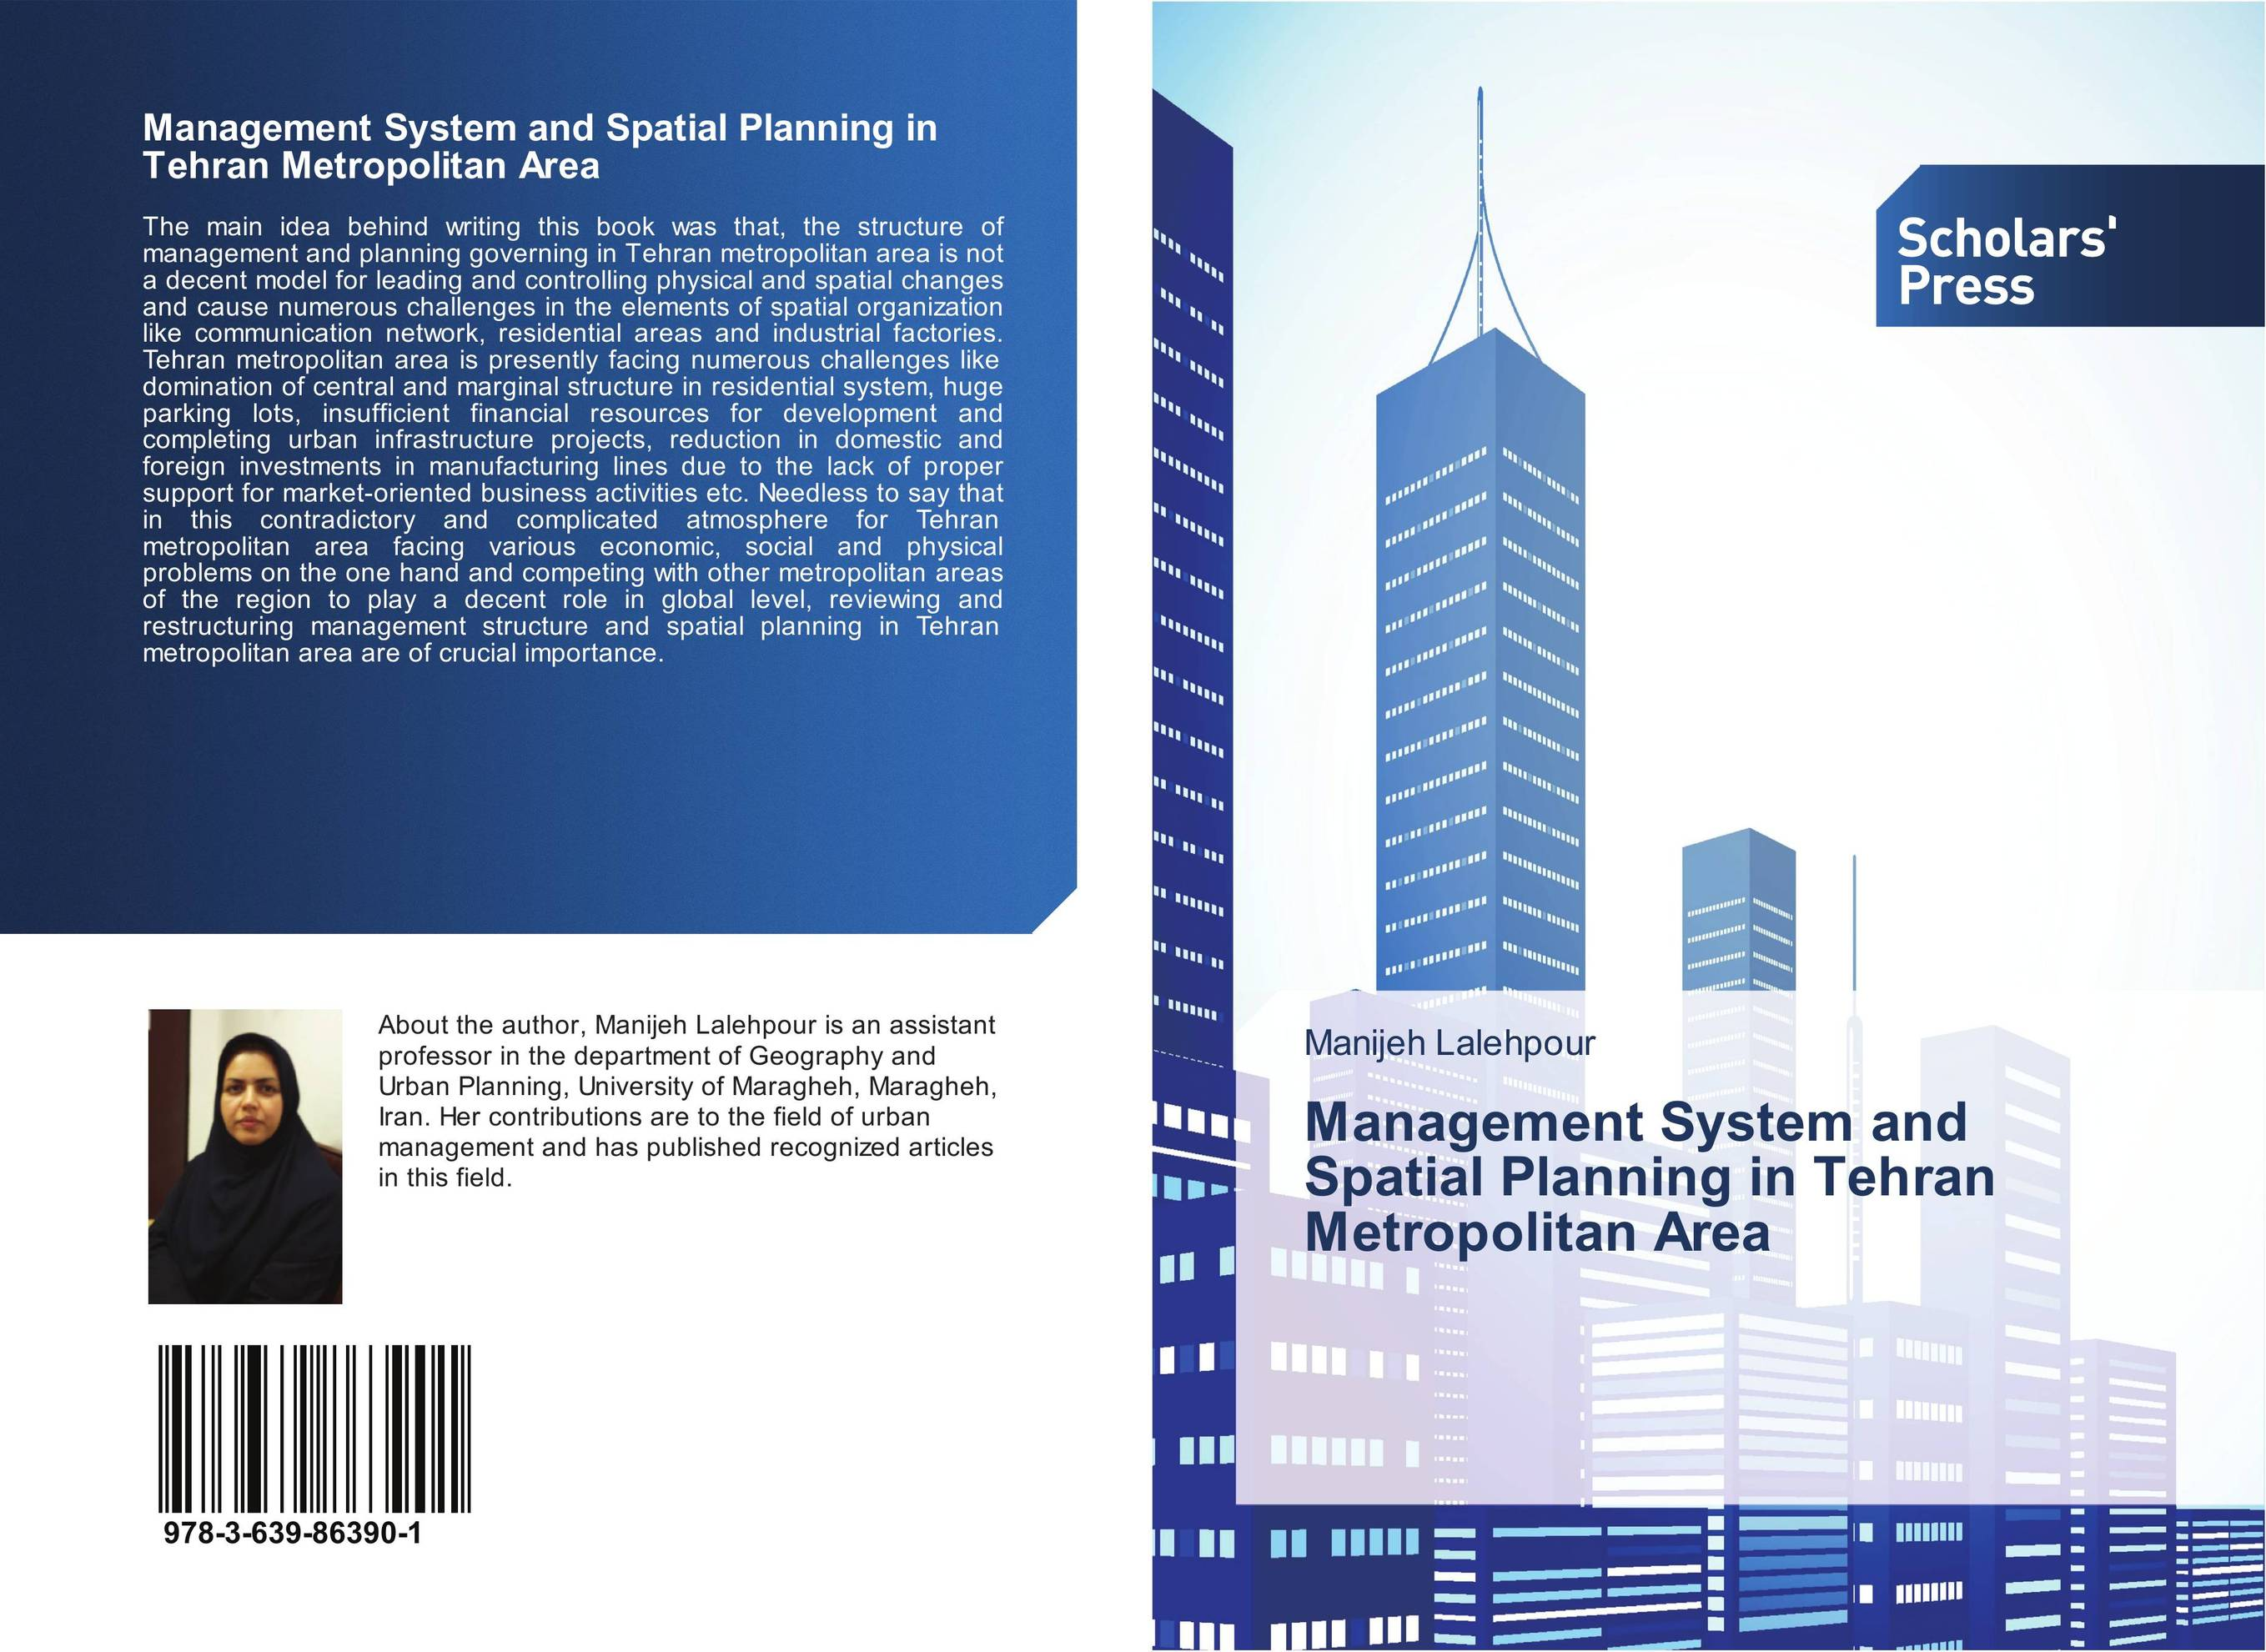 Management System and Spatial Planning in Tehran Metropolitan Area